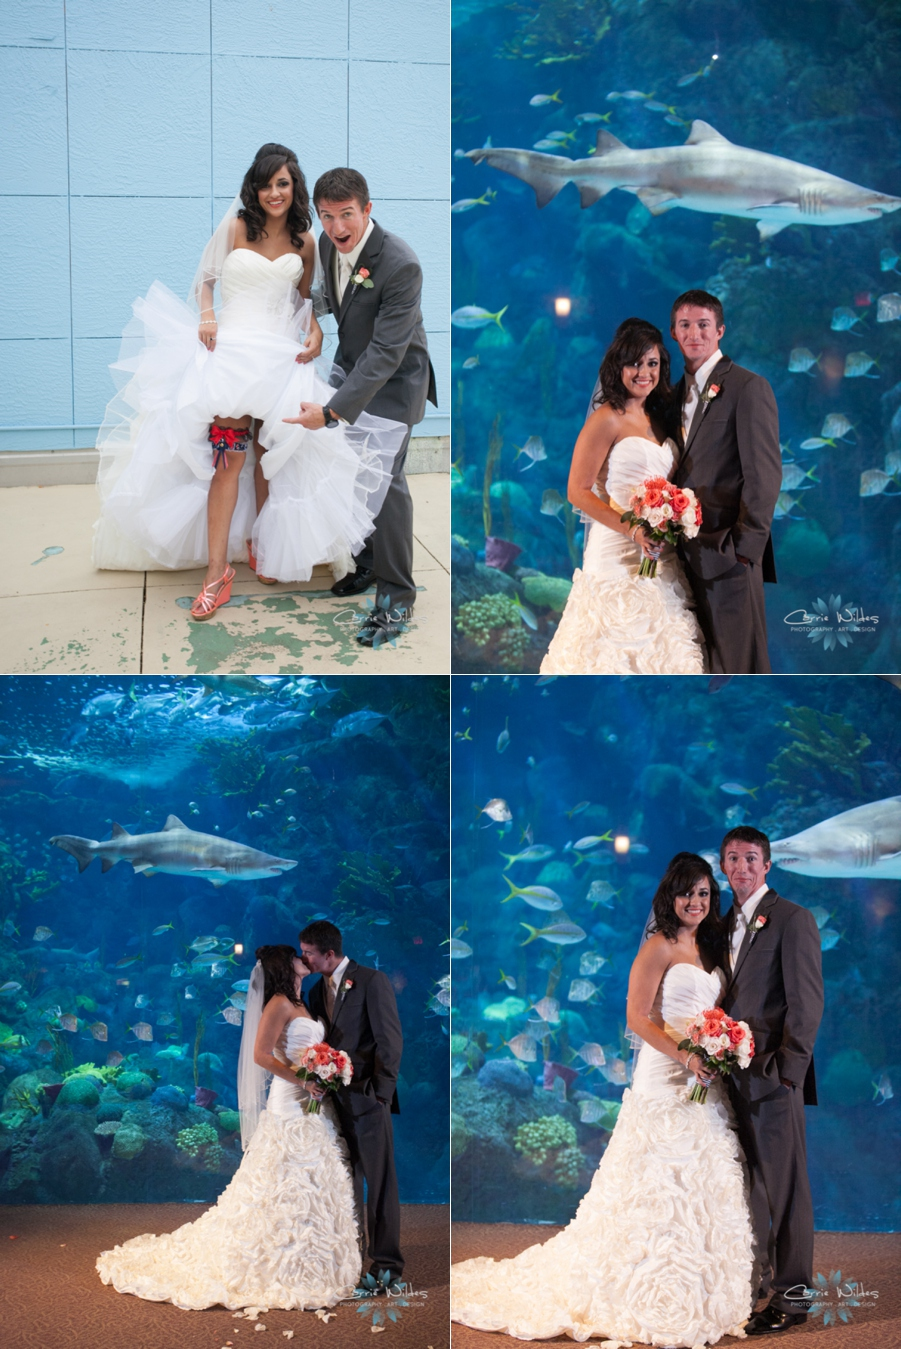 11_2_13 Florida Aquarium Wedding_0007.jpg